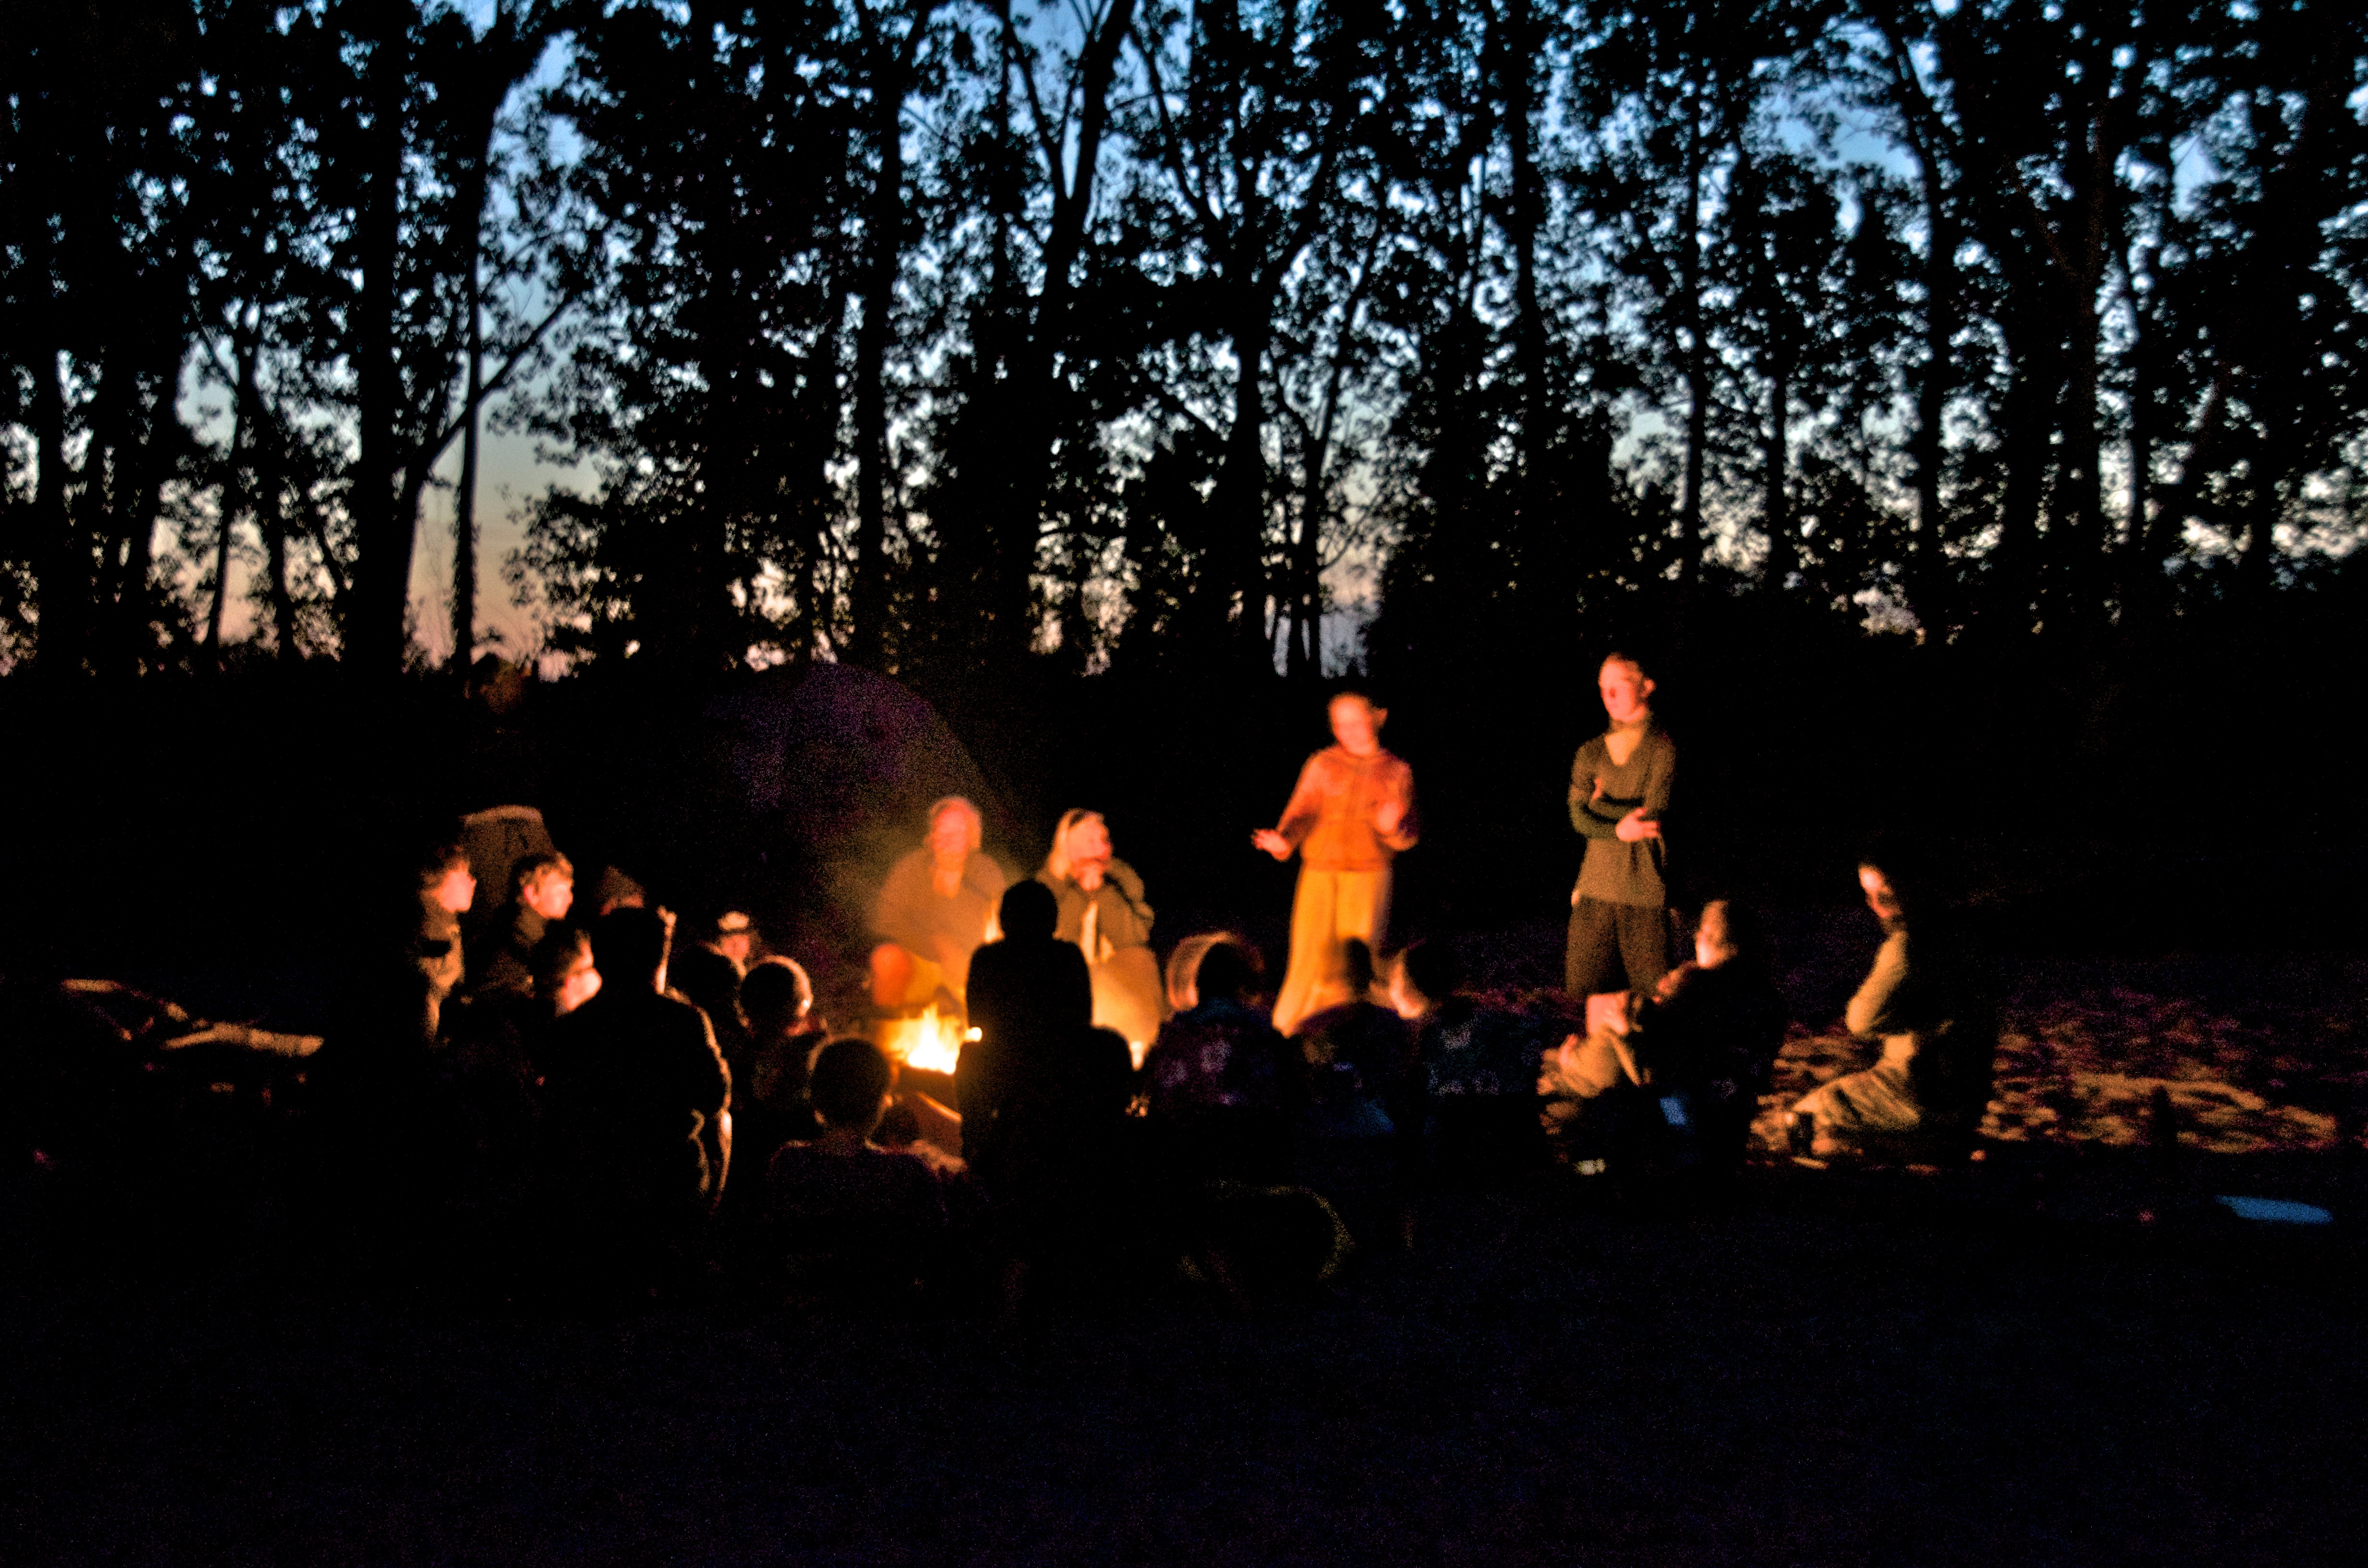 Wilderness at the doorstep. People surround a campfire at night. Image courtesy of John Ruskey.